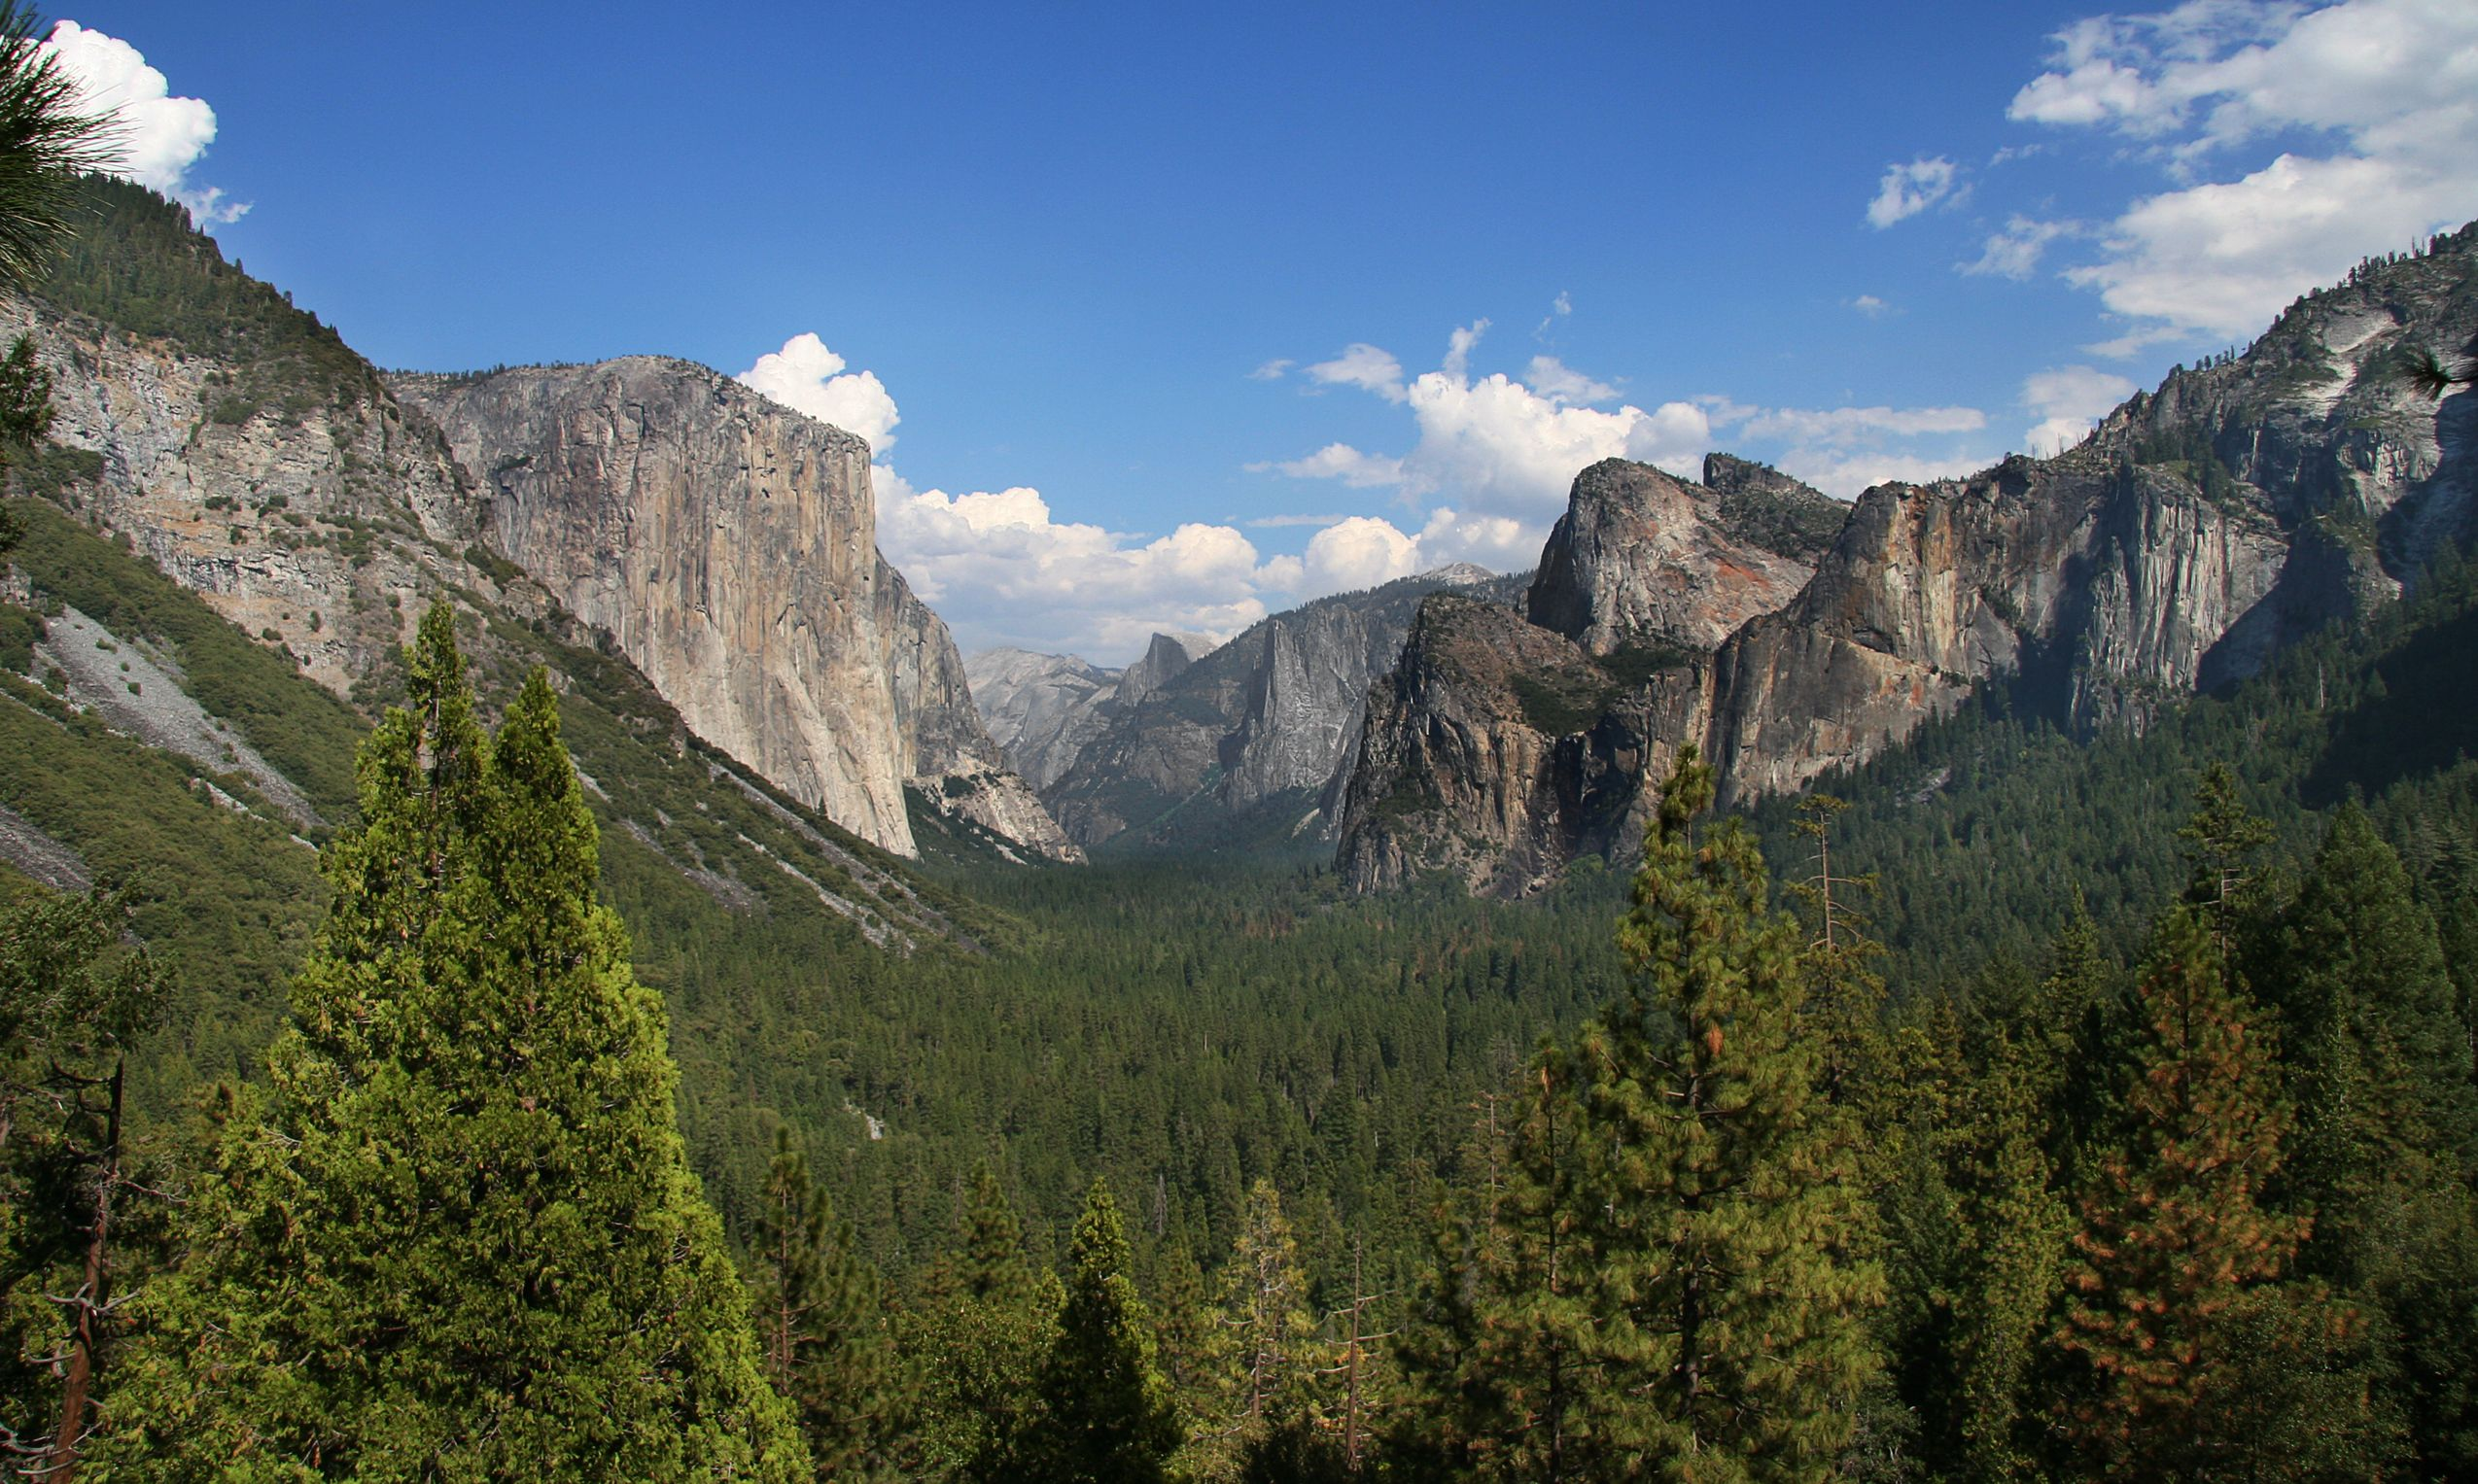 The geology of the Yosemite area